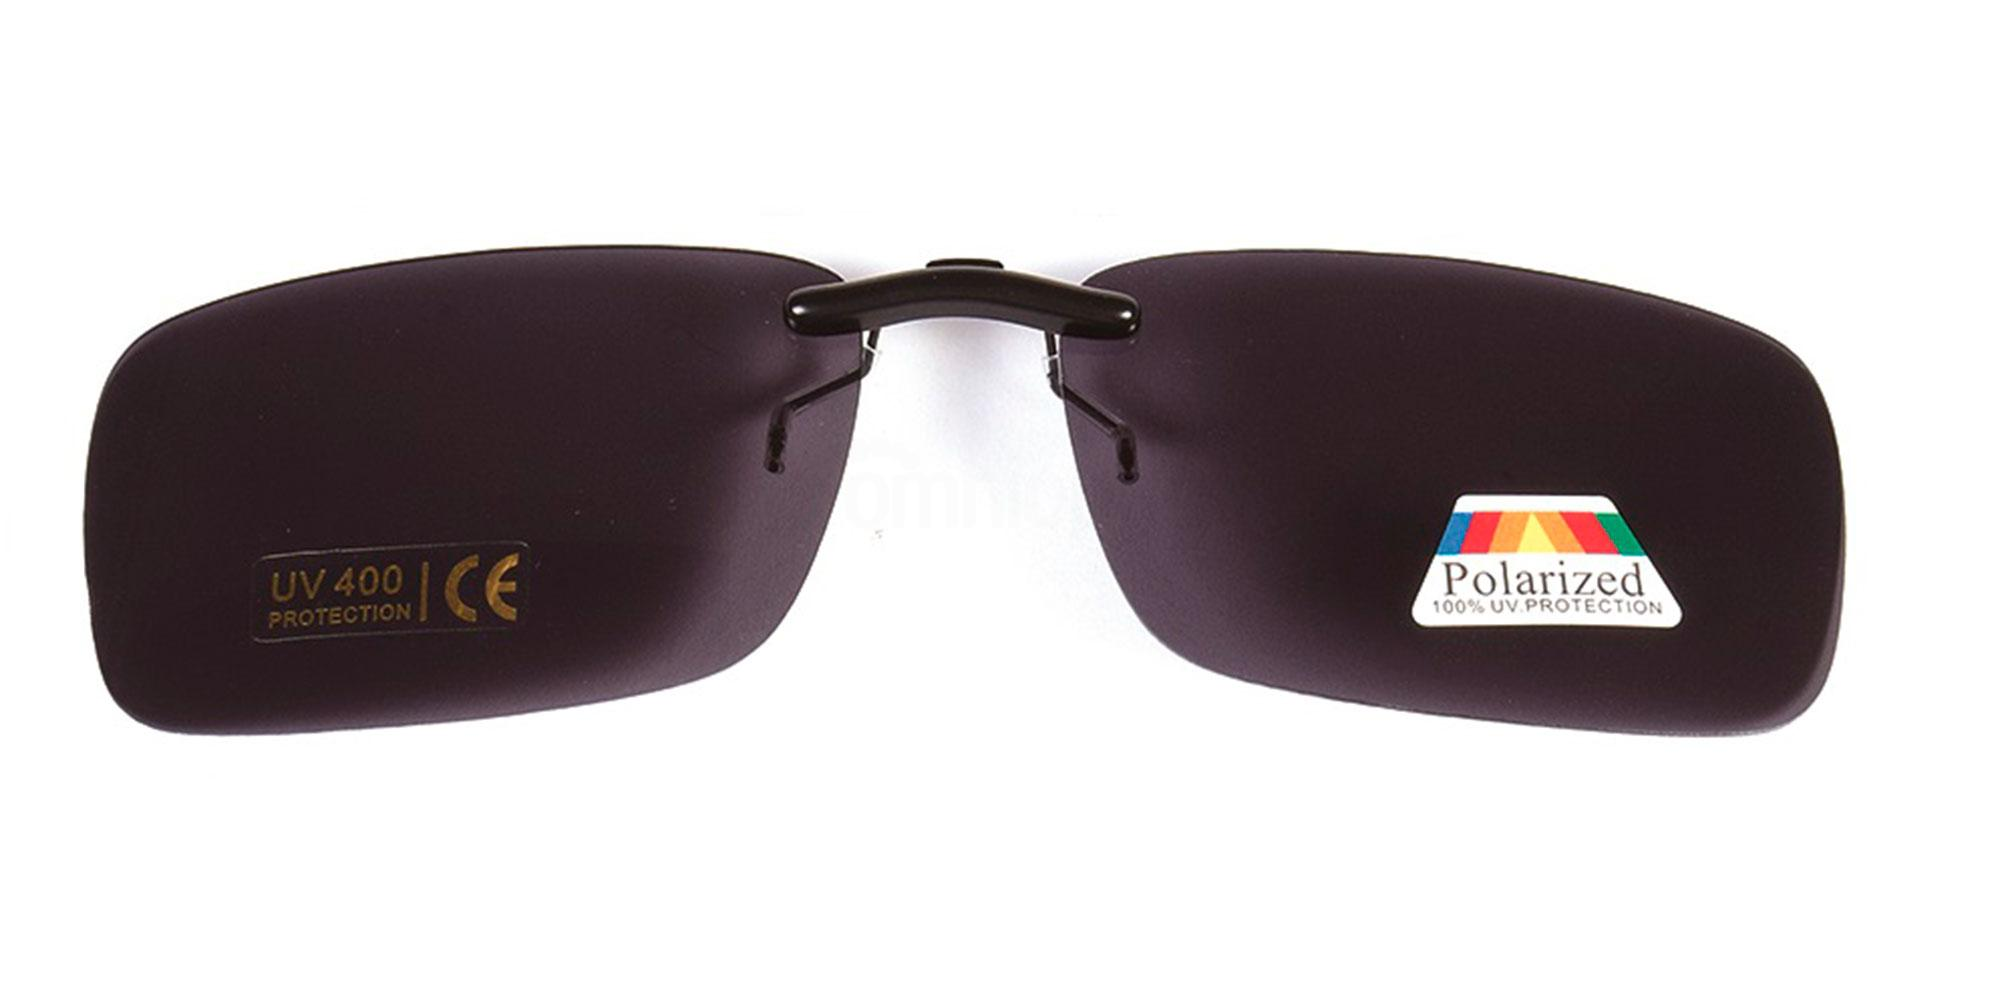 A CL1 – Sunglasses Clip-on Accessories, Optical accessories